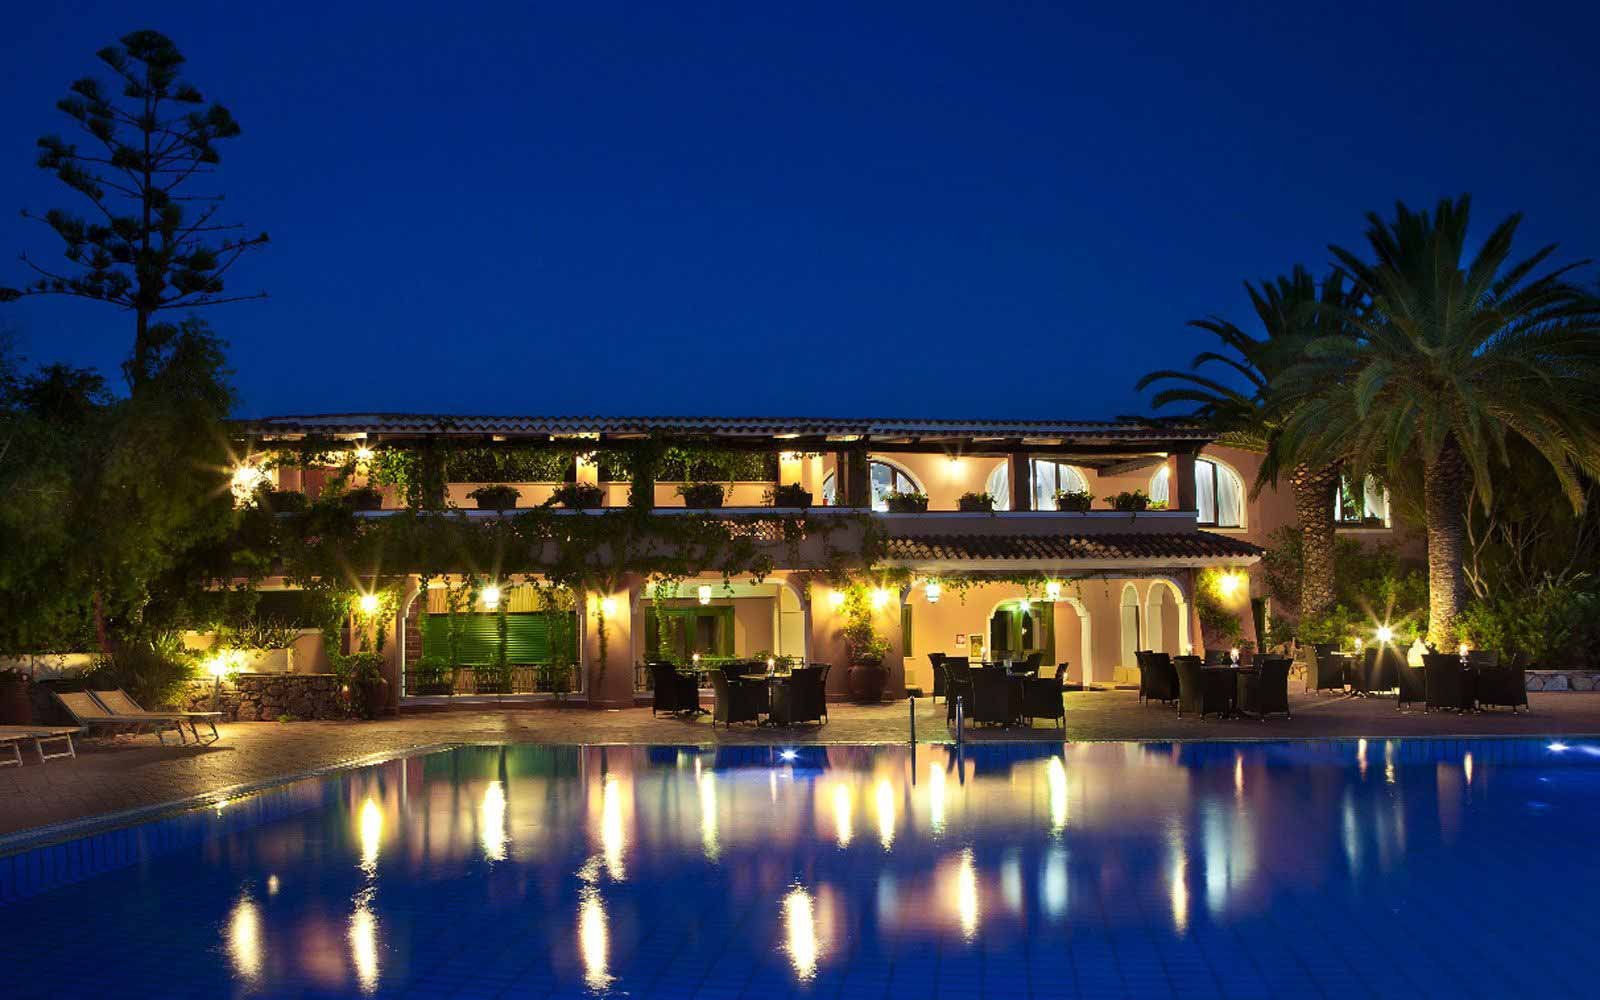 Cala Ginepro Hotel Resort at night